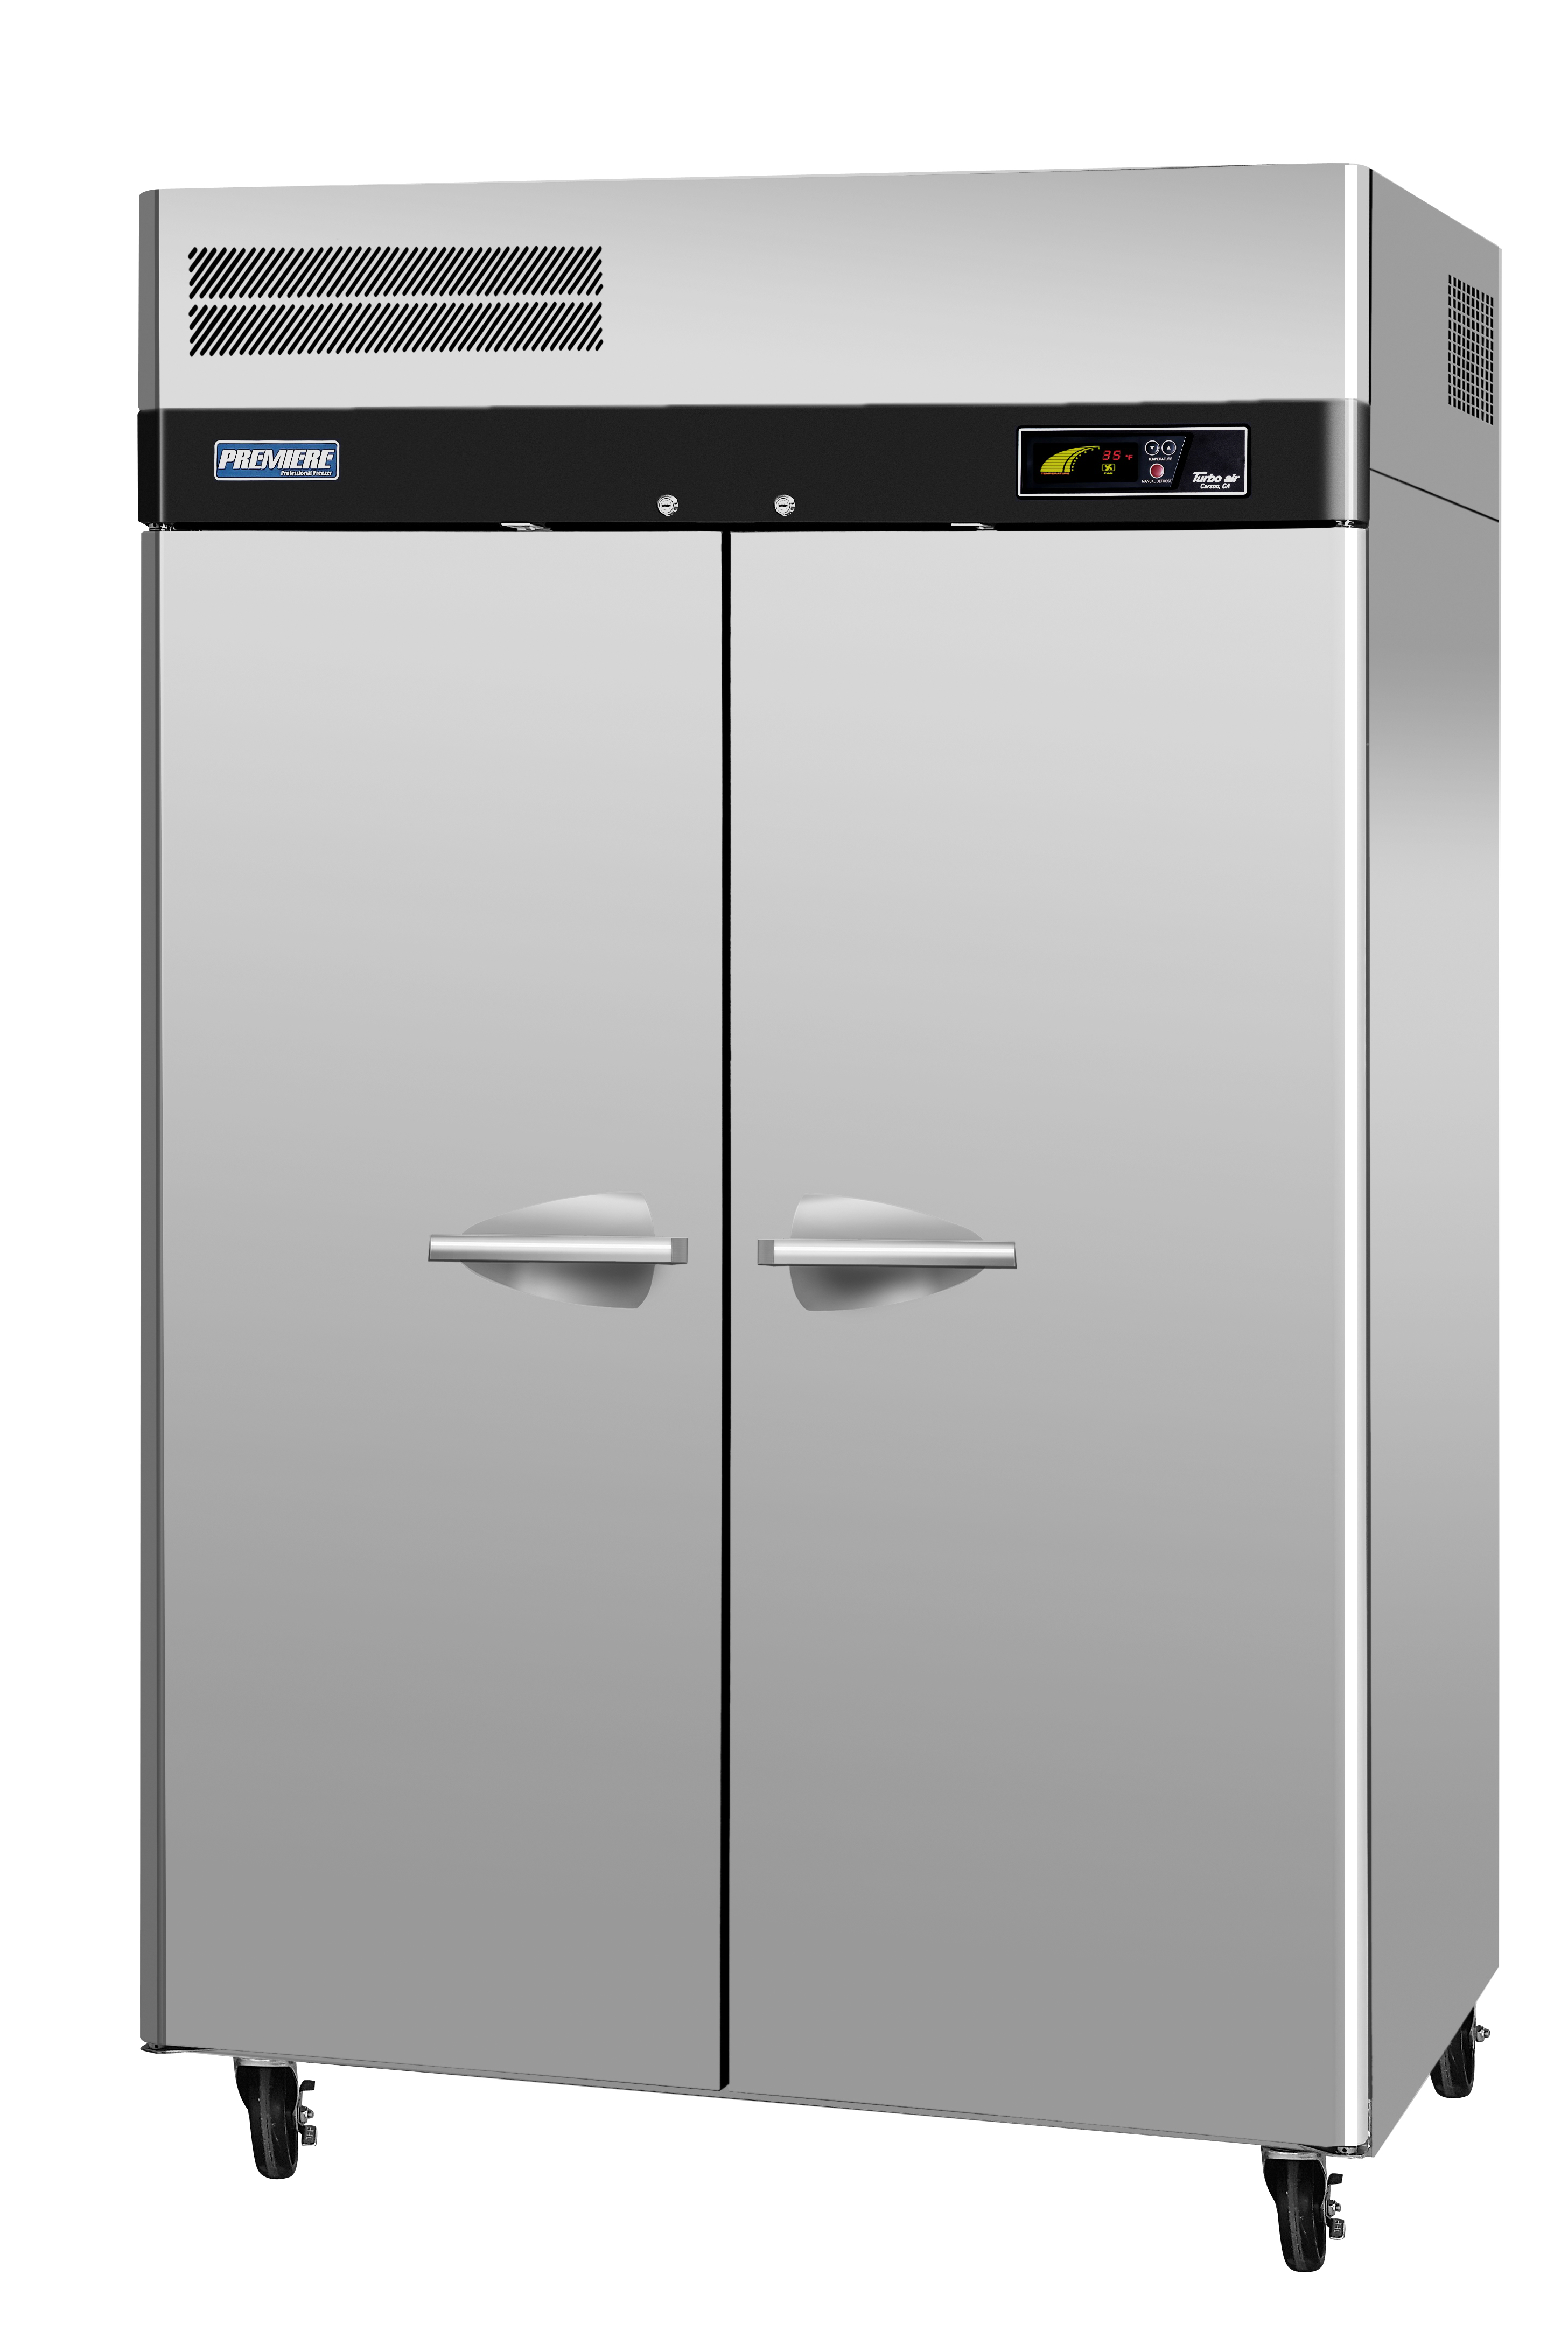 Premiere PRO Series Refrigerator, reach-in, two-section